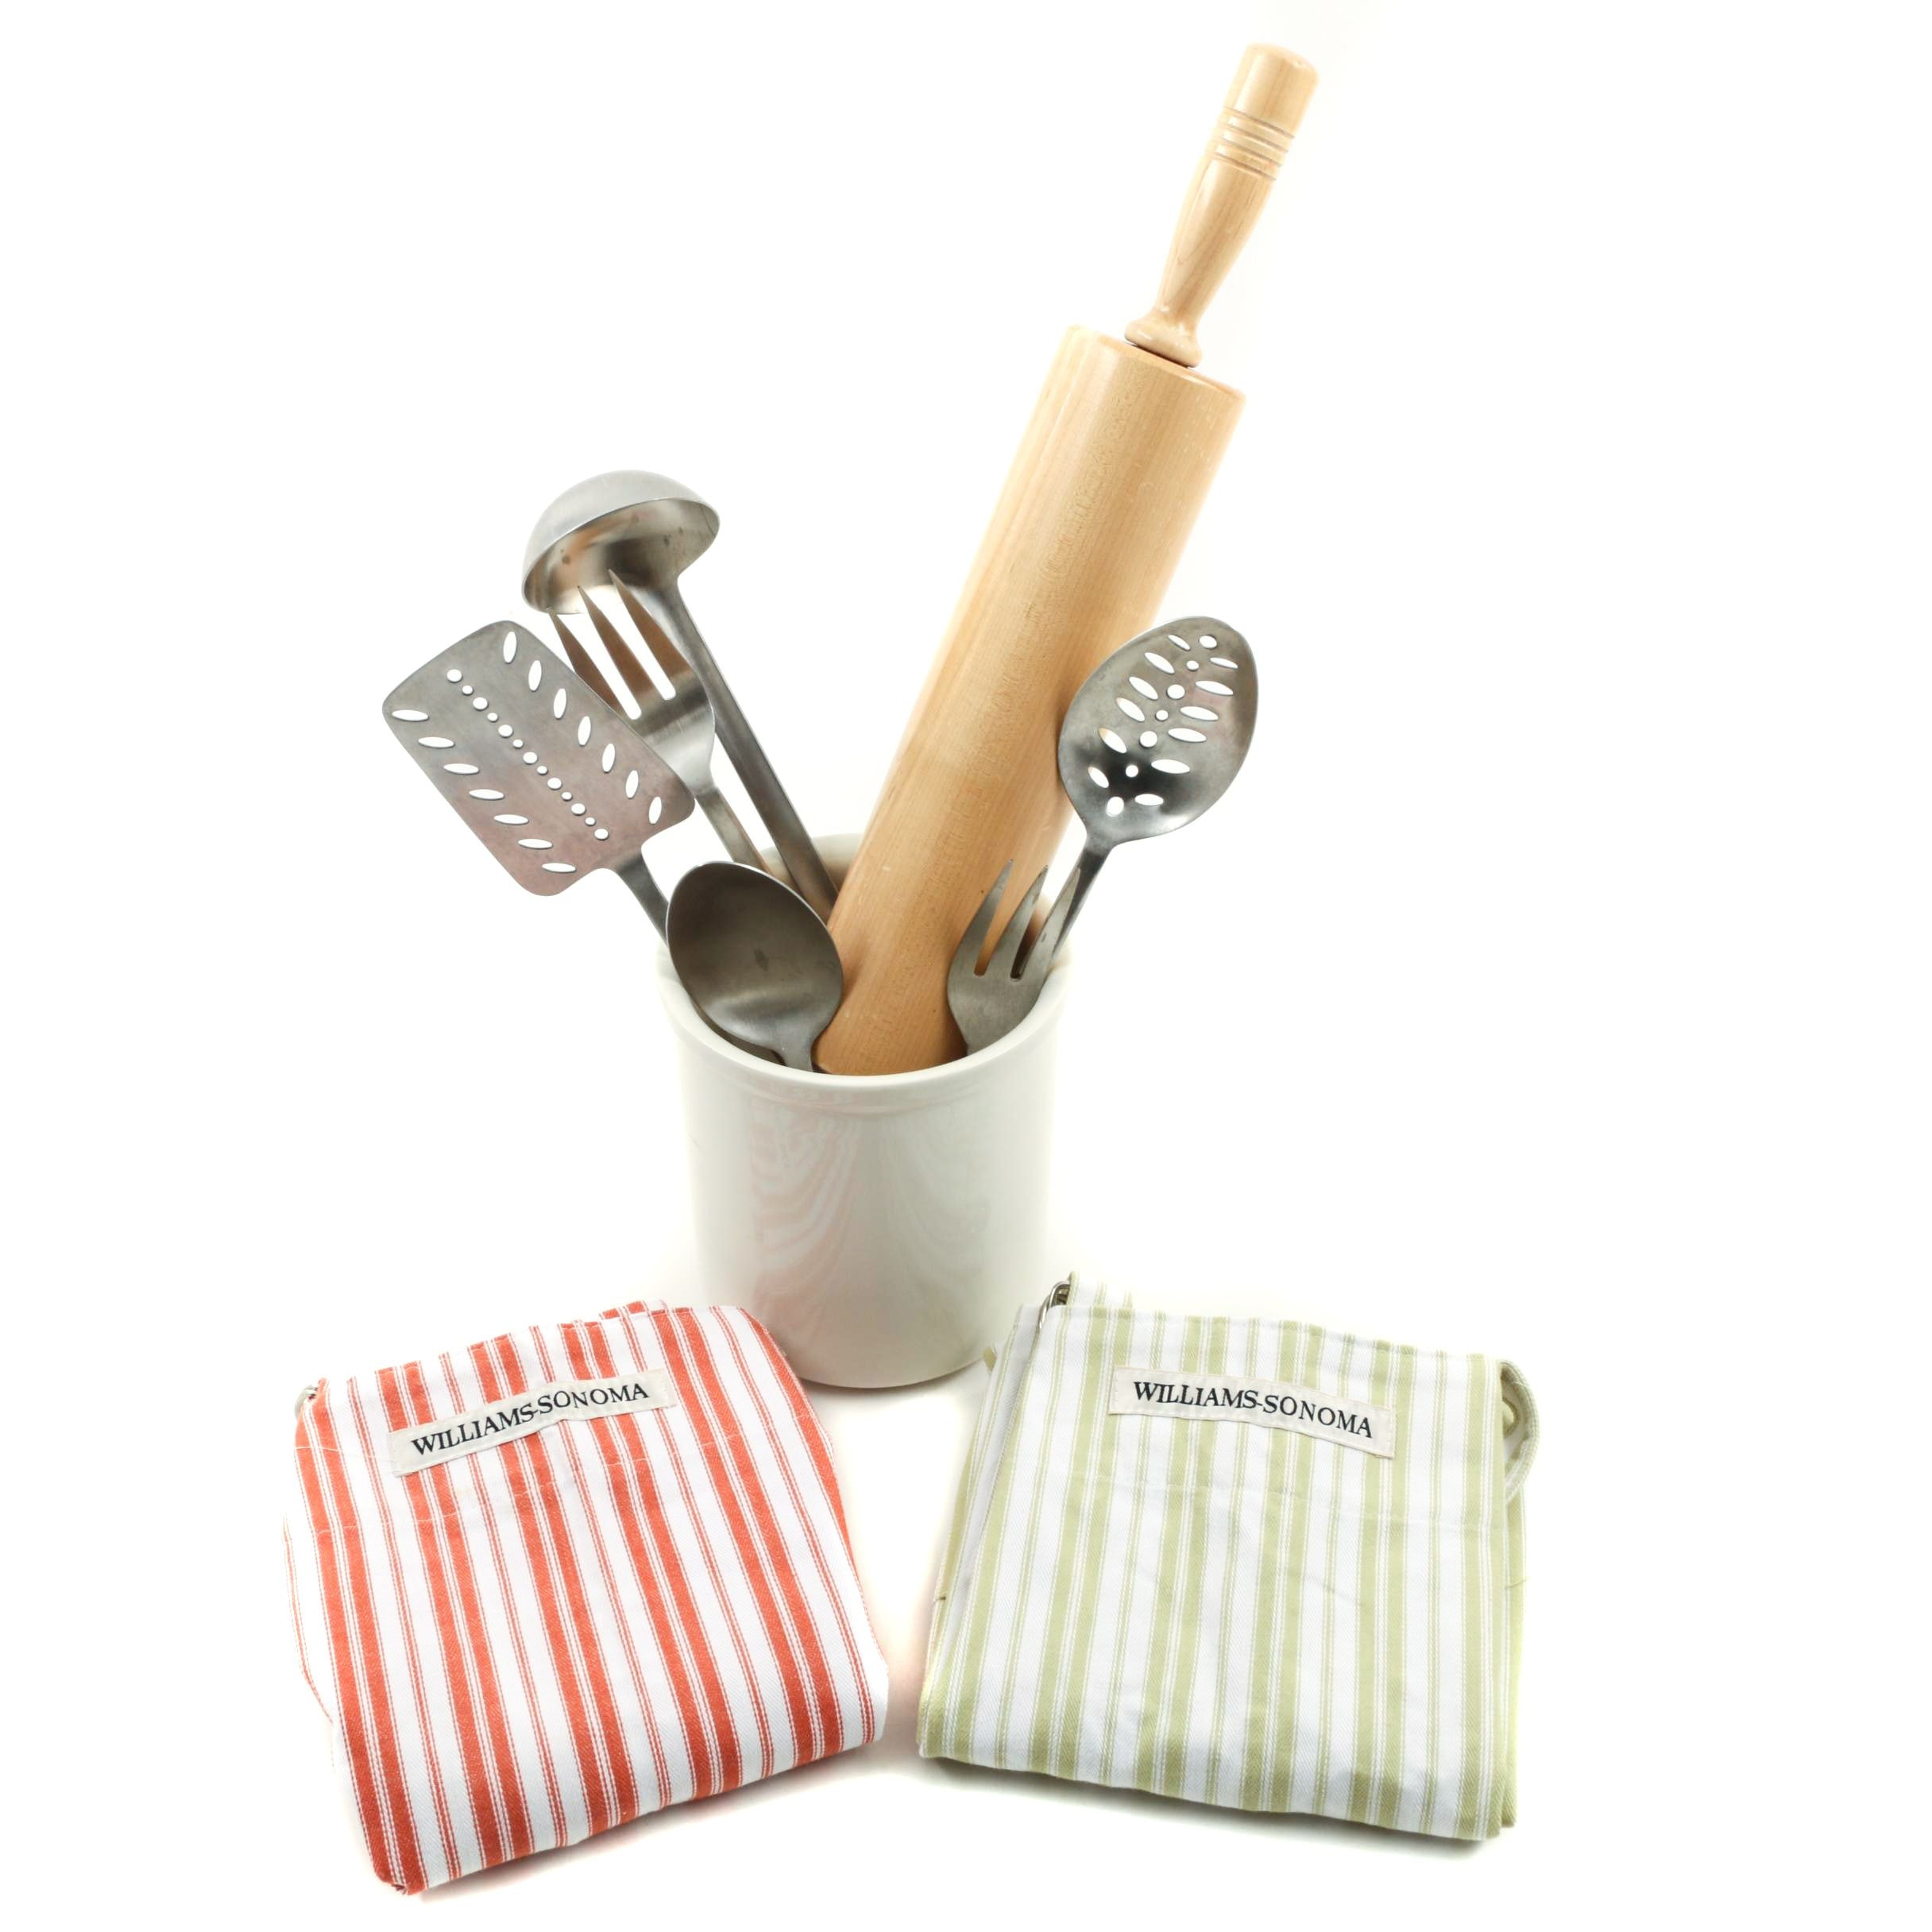 Williams-Sonoma Aprons and Kitchen Utensils